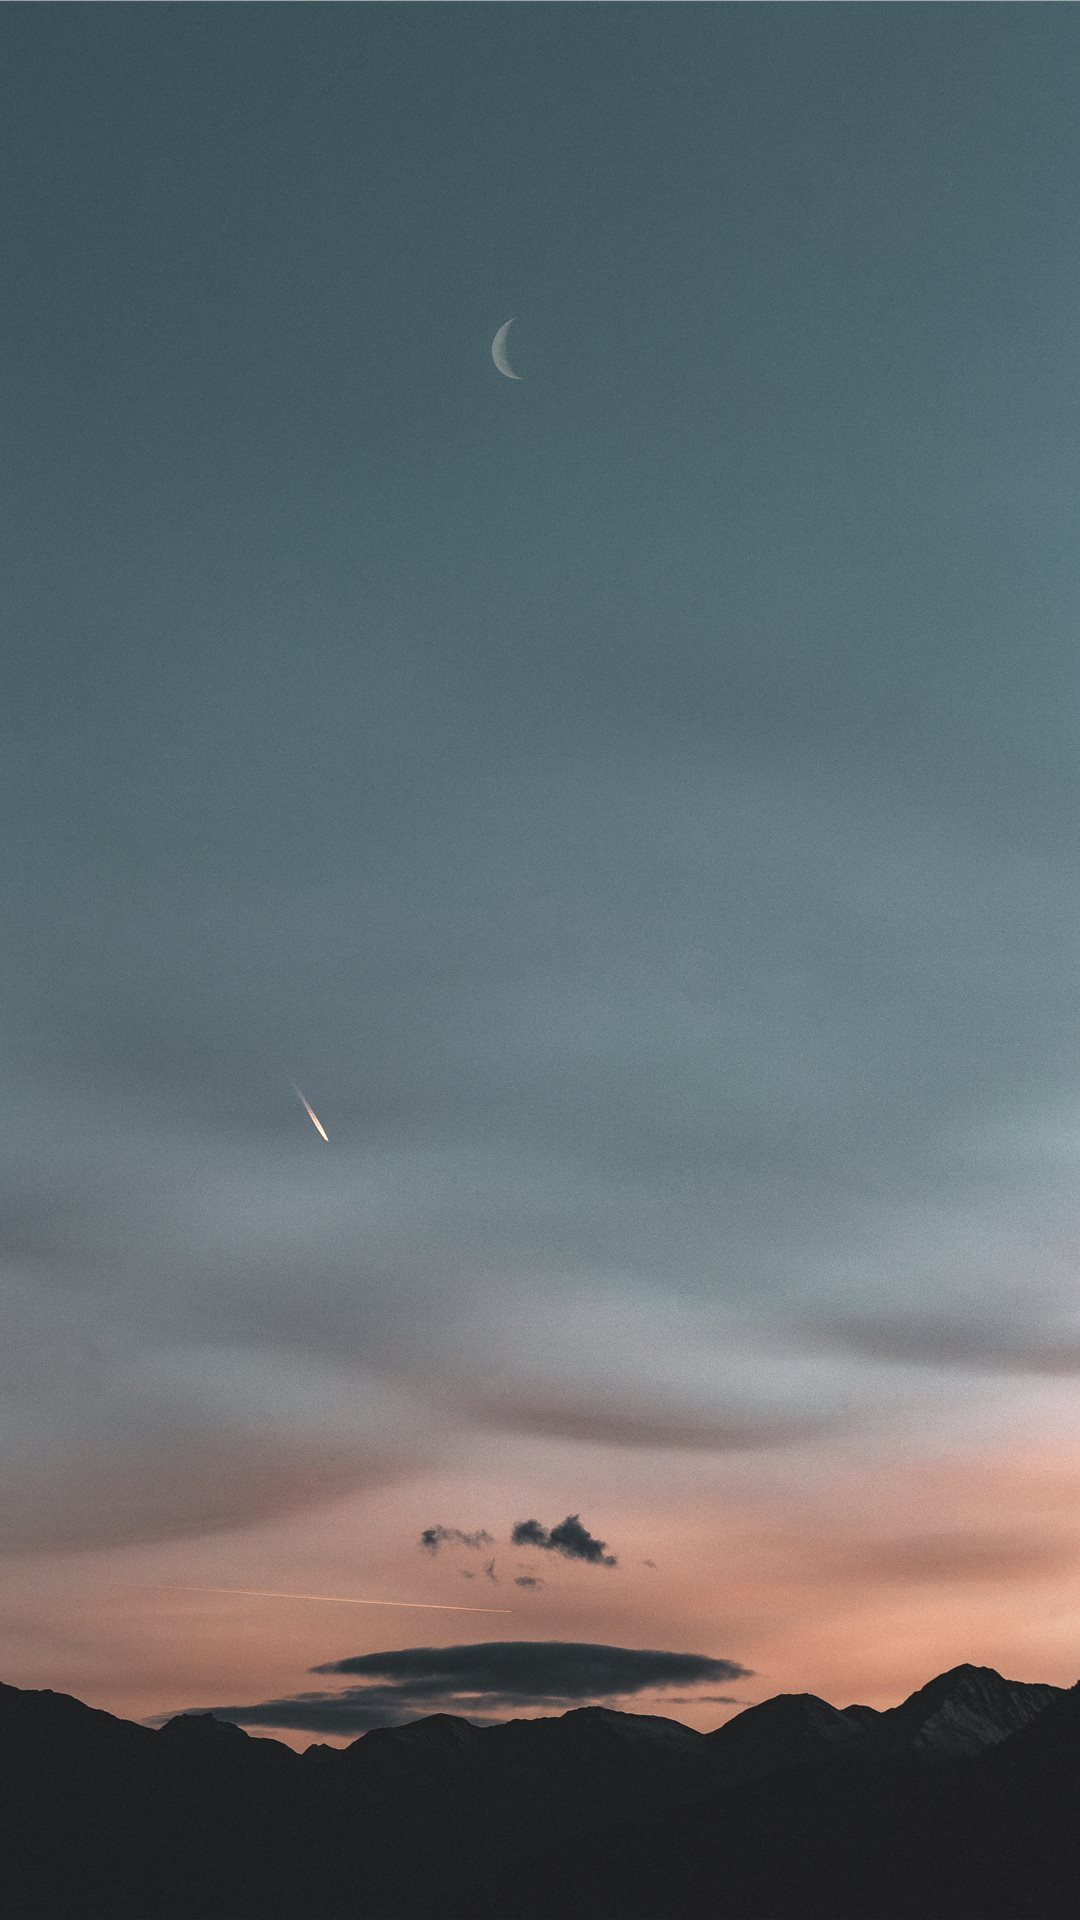 Shooting Star Iphone Wallpaper